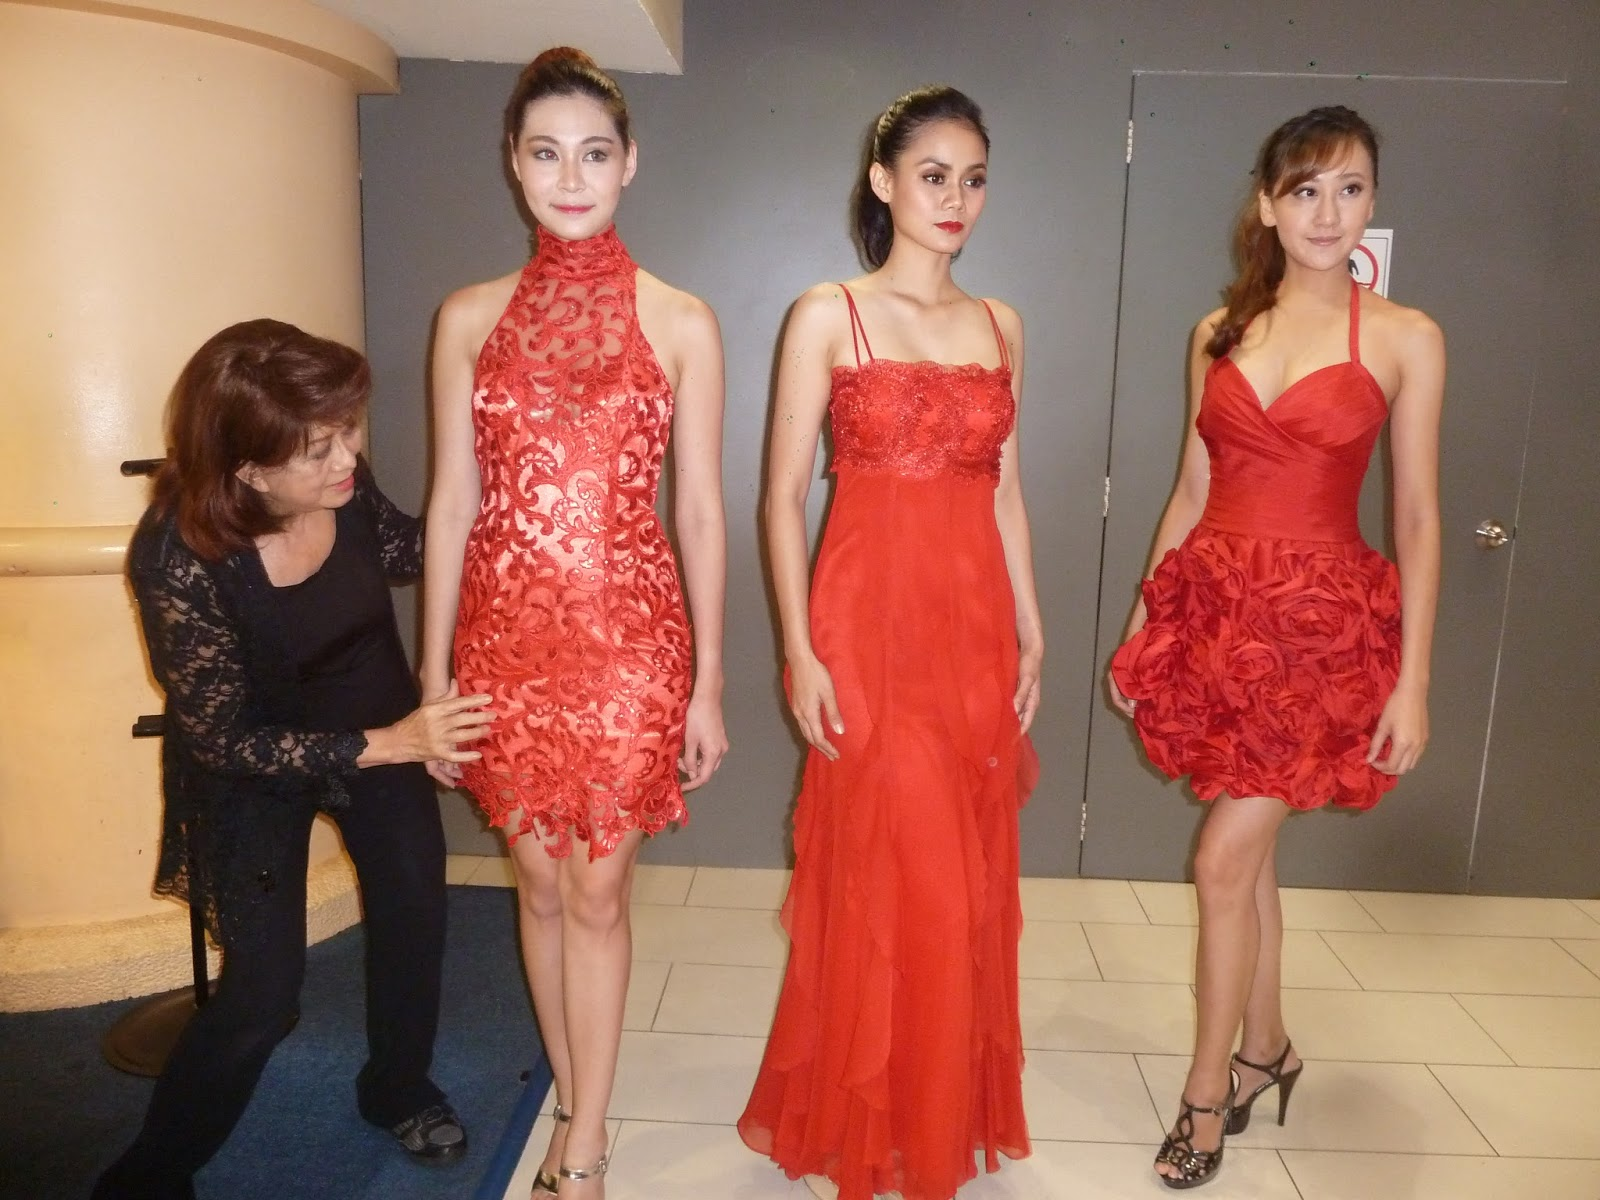 Kee Hua Chee Live Annie Wong Founder And Principal Of Iftc International Academy Of Fashion And Design Shows Red Couture Gowns At Sungai Wang Plaza On 27 November 2015